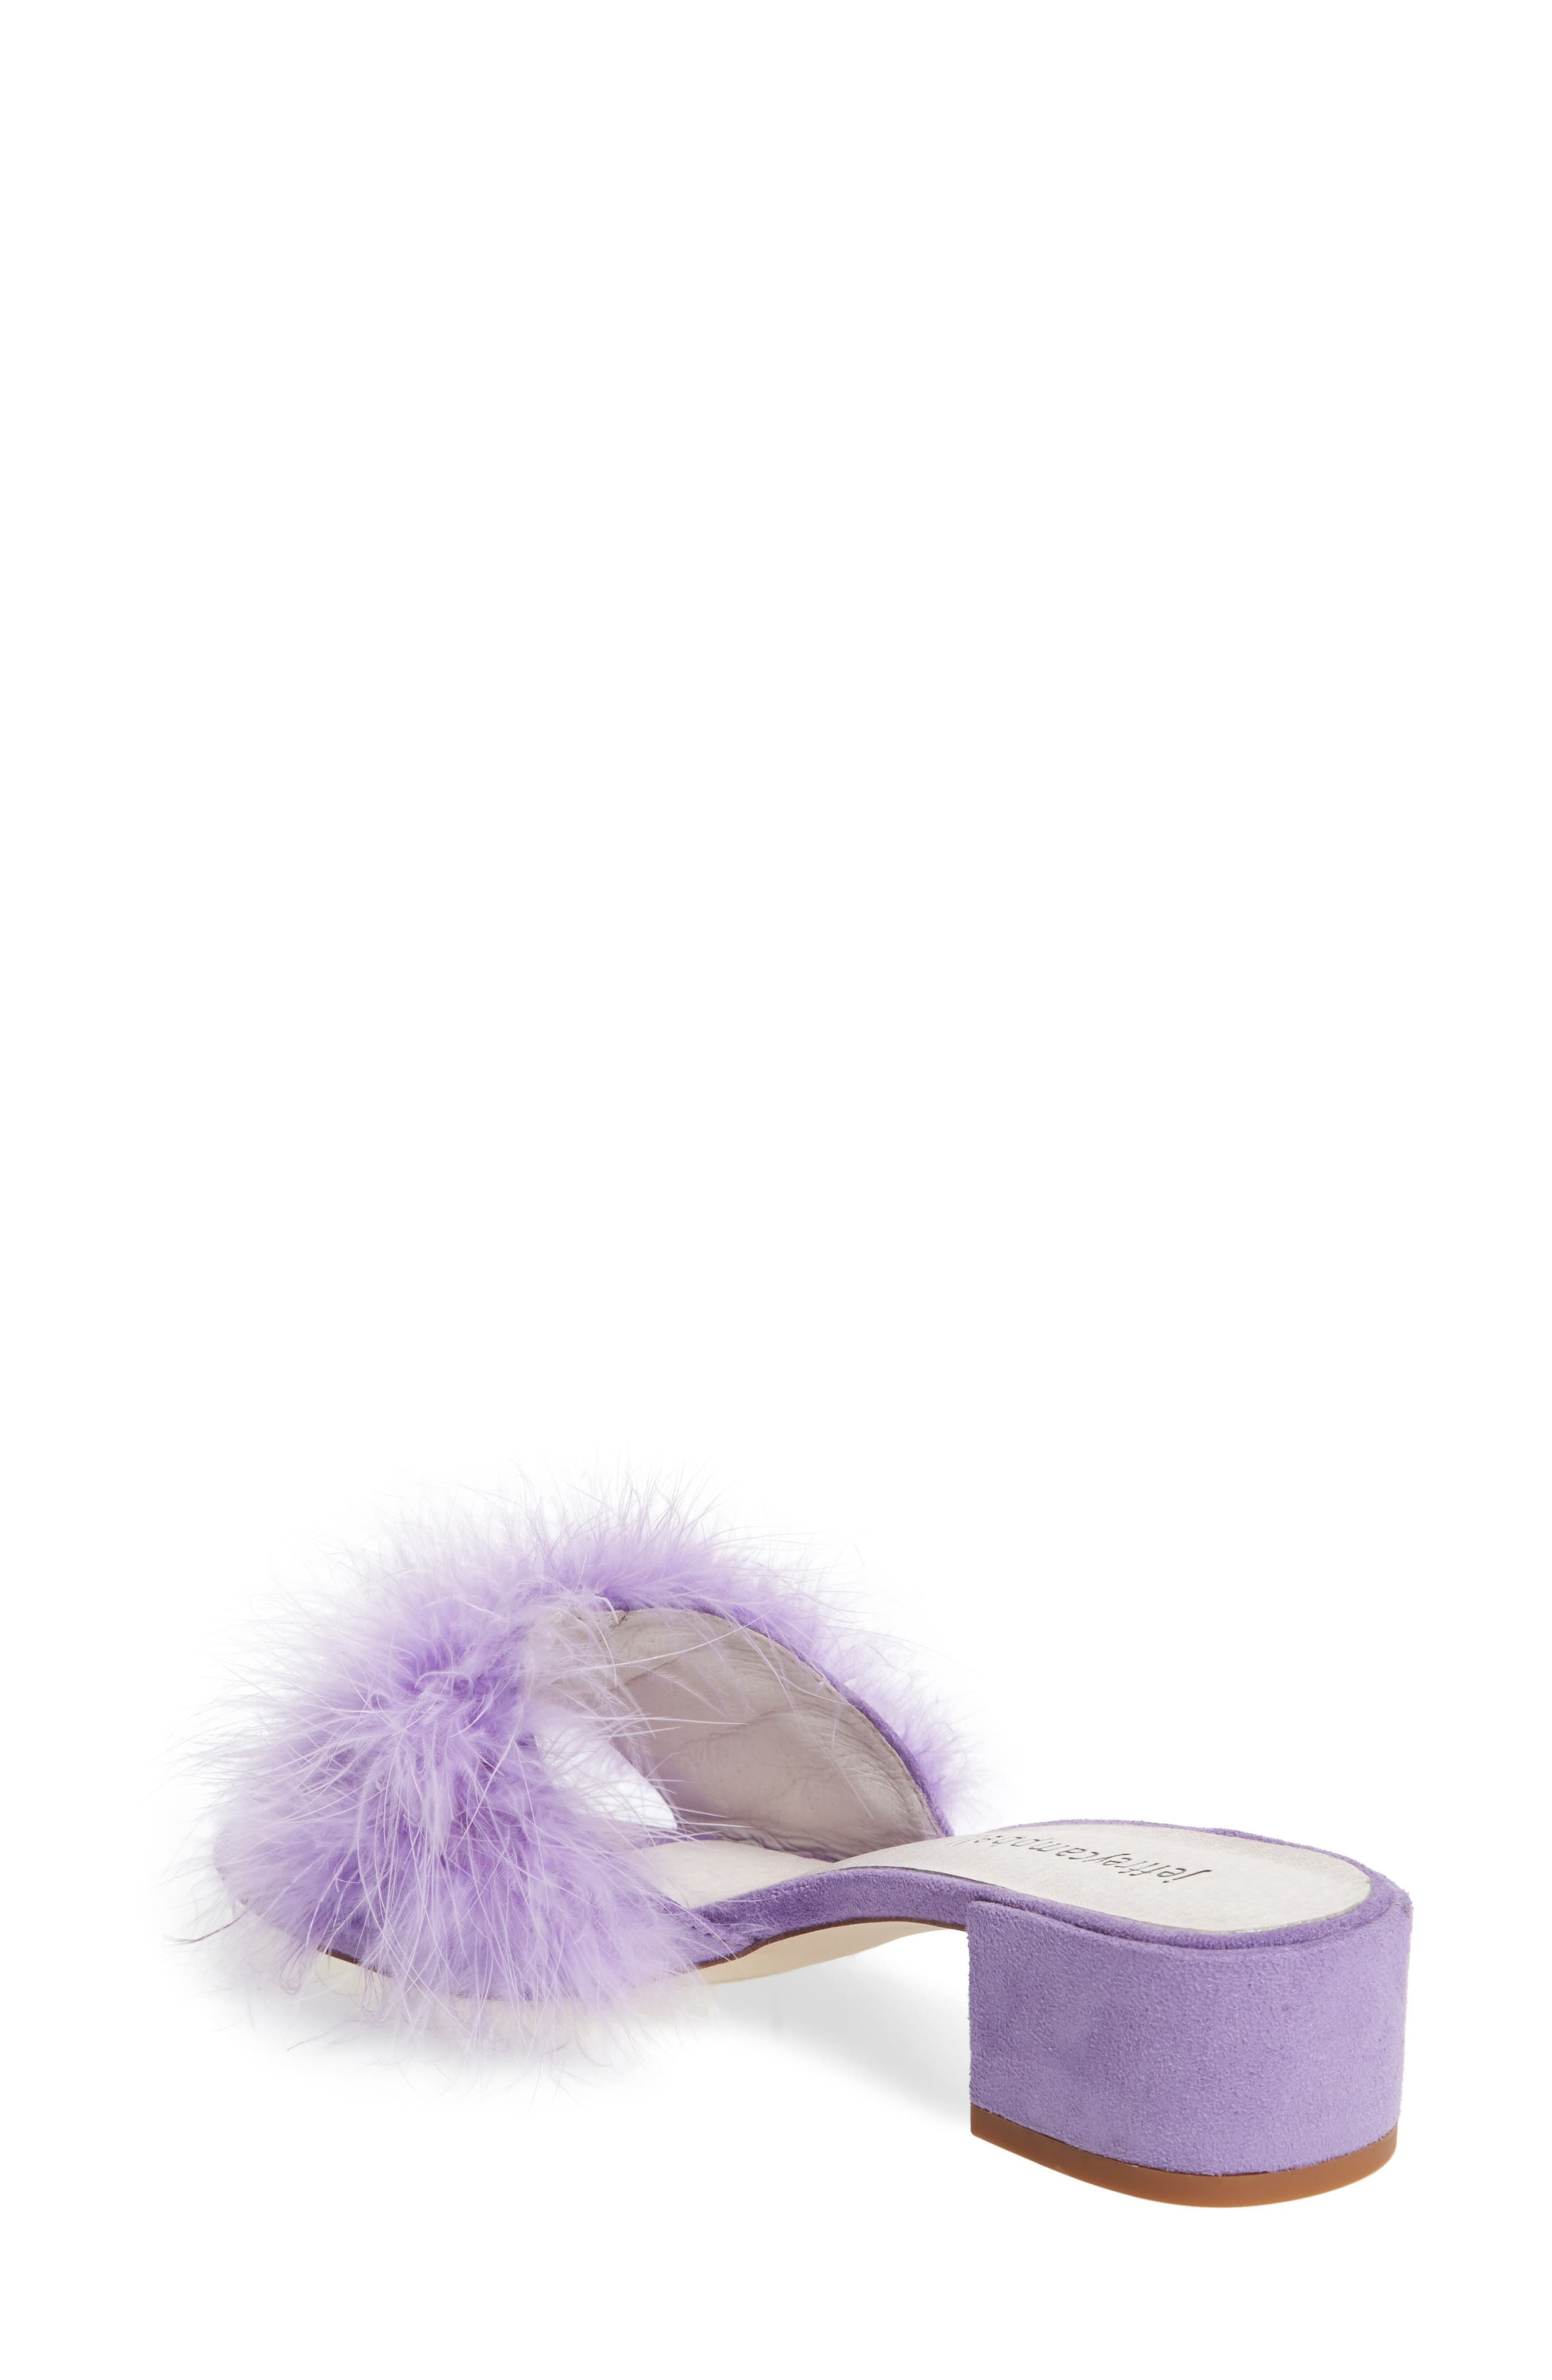 'Beaton' Slide Sandal,                             Alternate thumbnail 18, color,